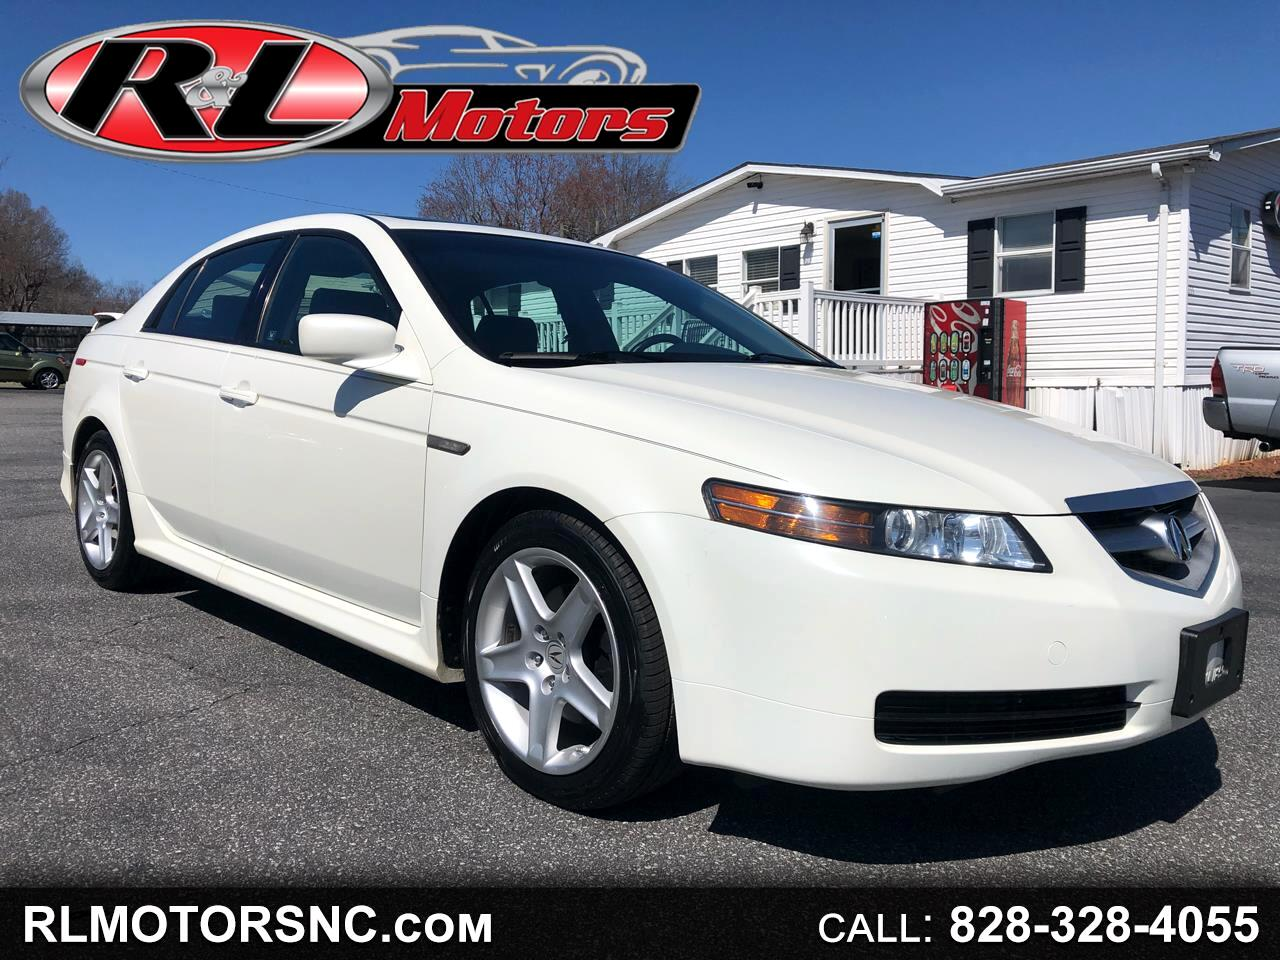 2006 Acura TL 3.2TL with Navigation System